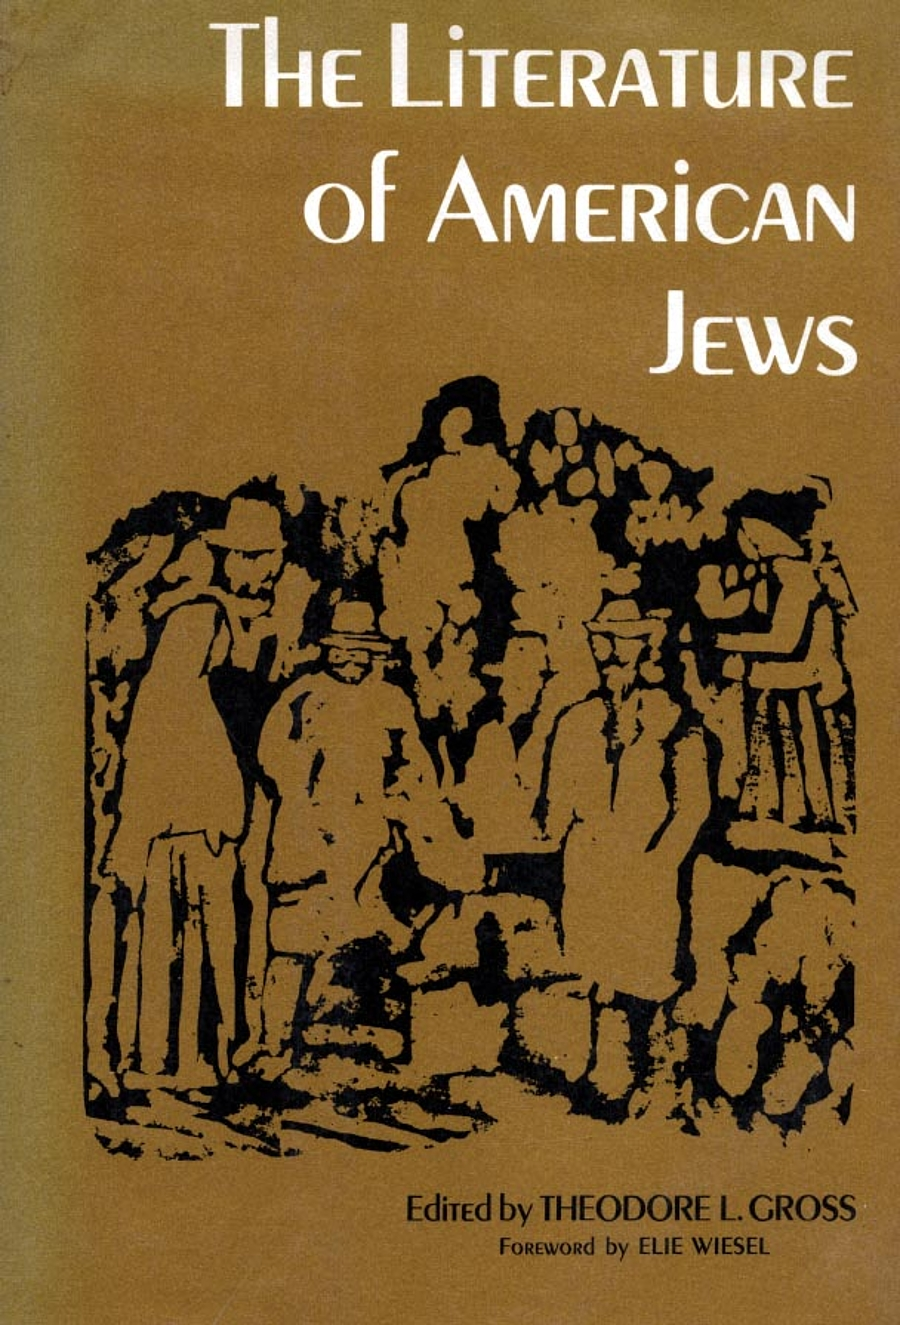 jewish american literatue Faculty in contemporary literature and culture teach graduate seminars in such subjects as african american literature, experimental poetry, contemporary fiction, science fiction, cultural studies, post-colonial literature, various ethnic literatures, and scientific and medical issues viewed from literary and rhetorical perspectives.